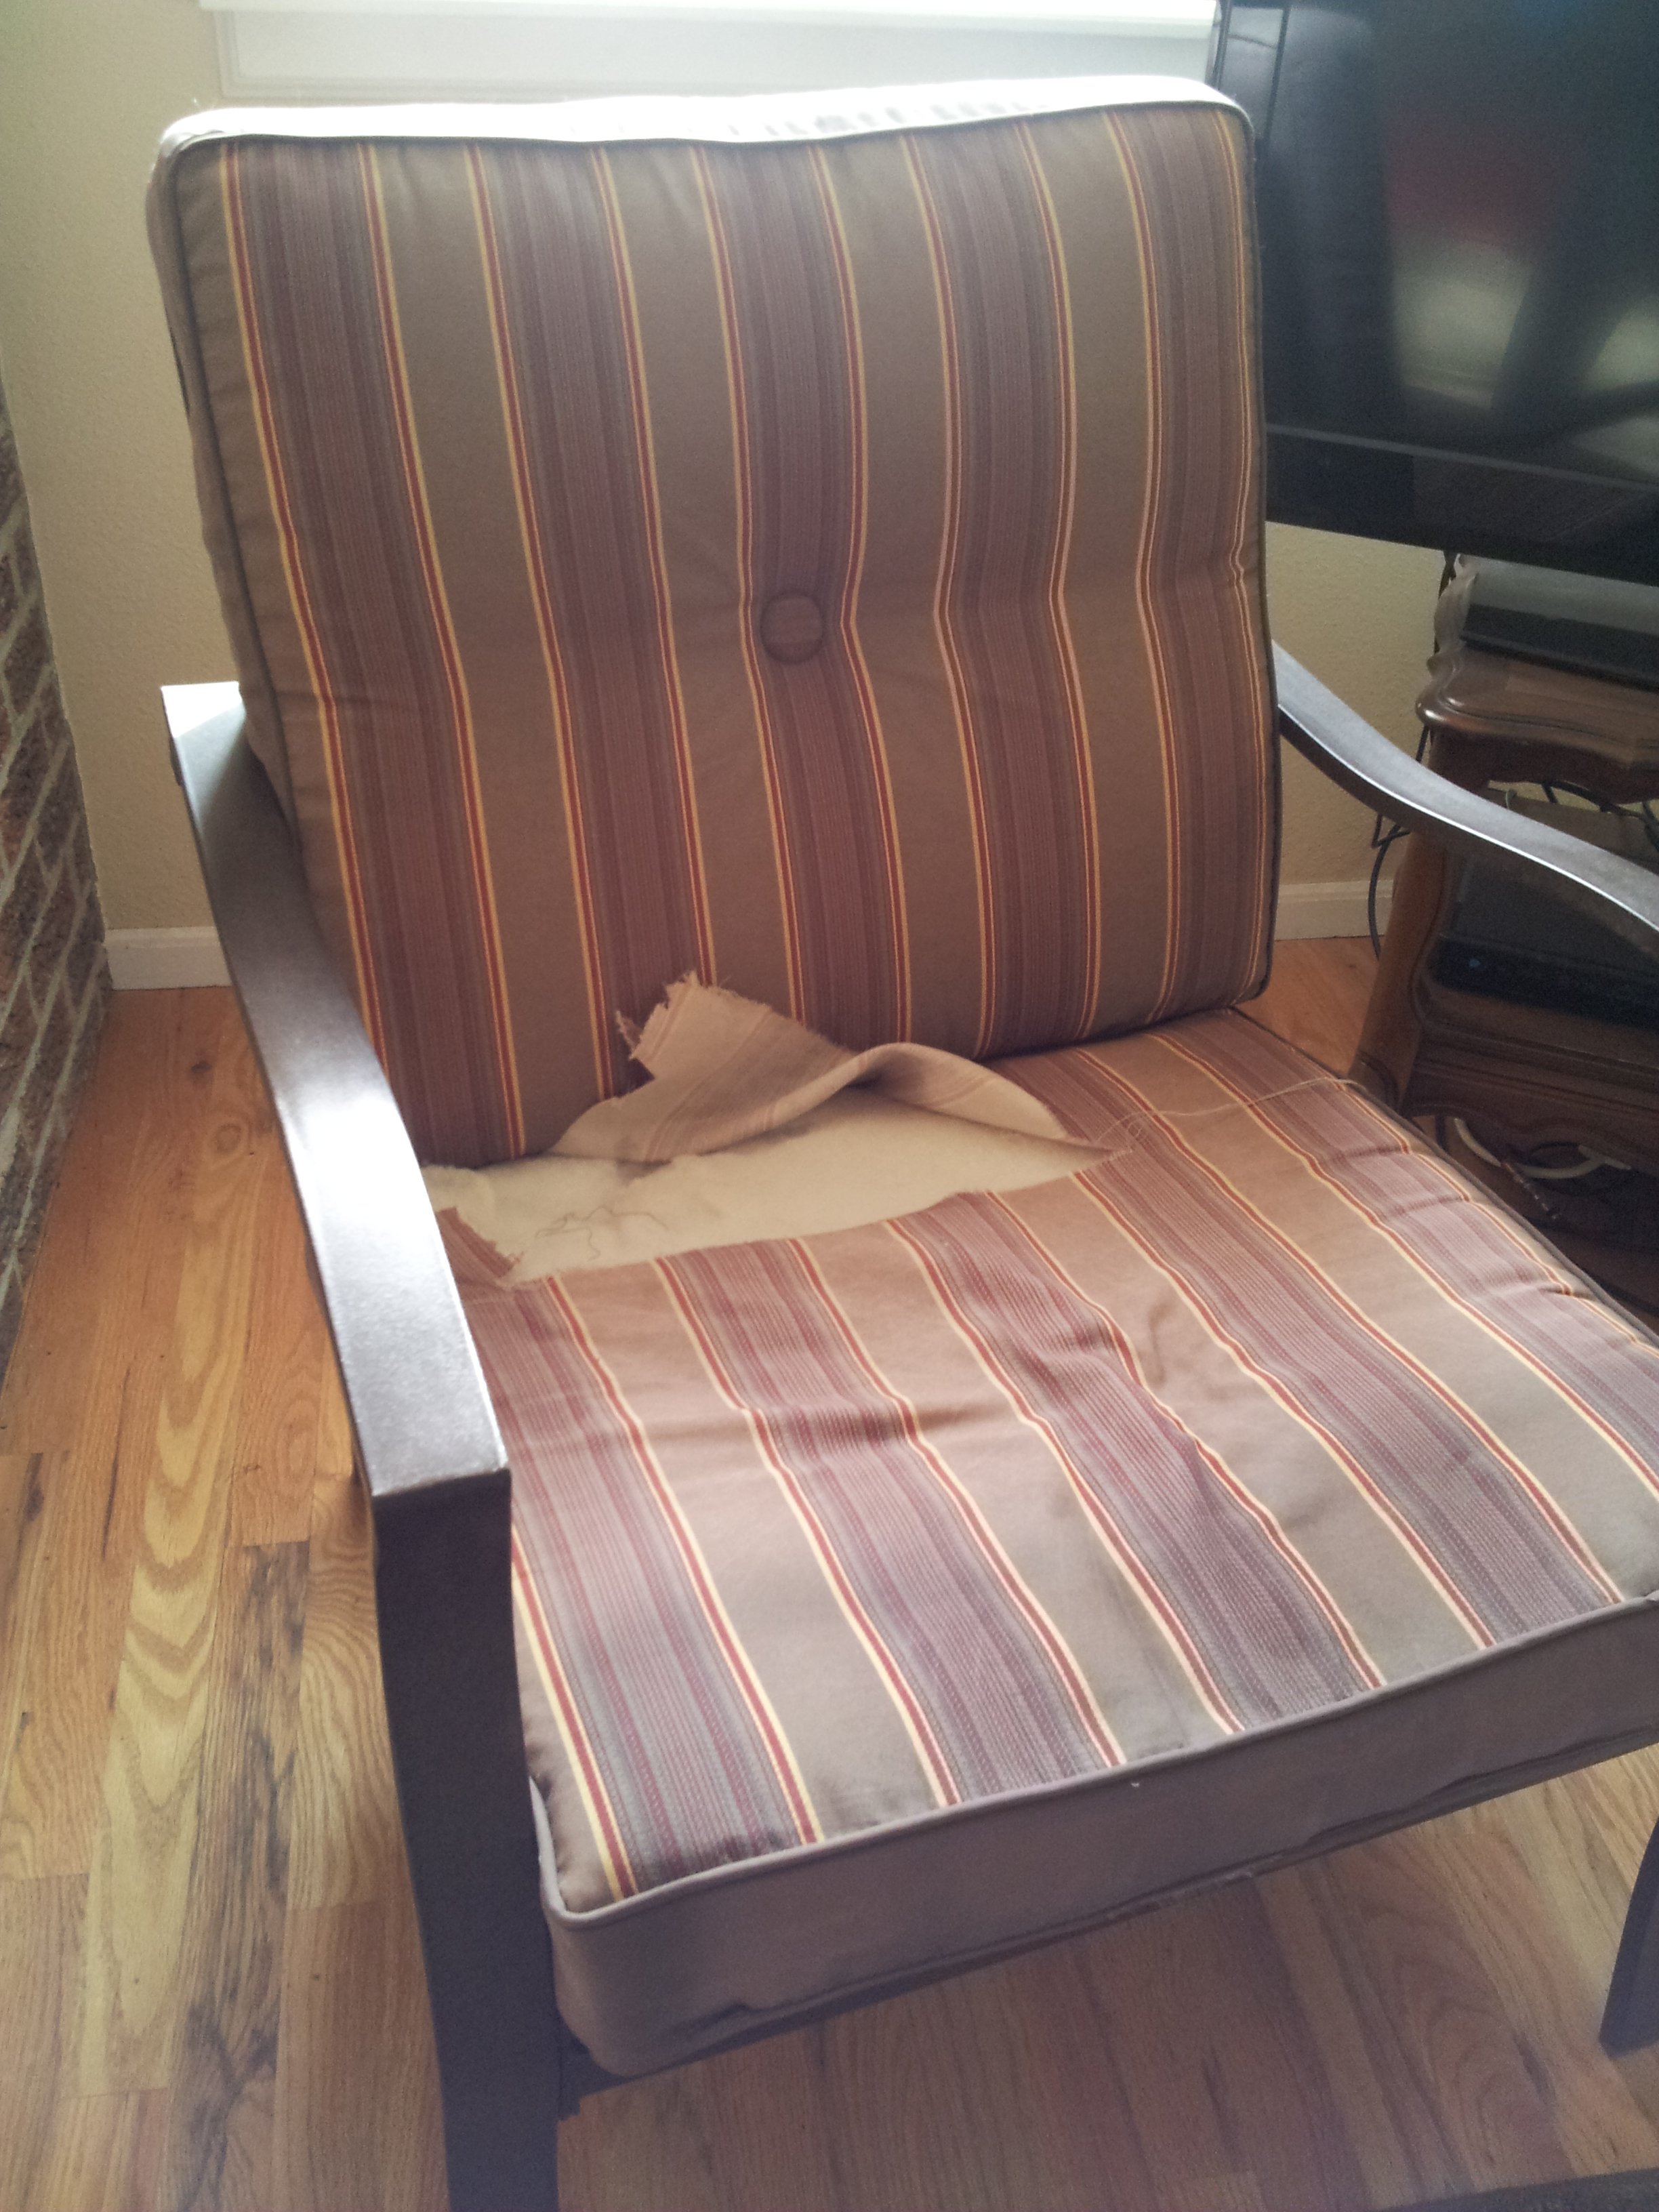 duct tape furniture. Patio Furniture Duct Tape P